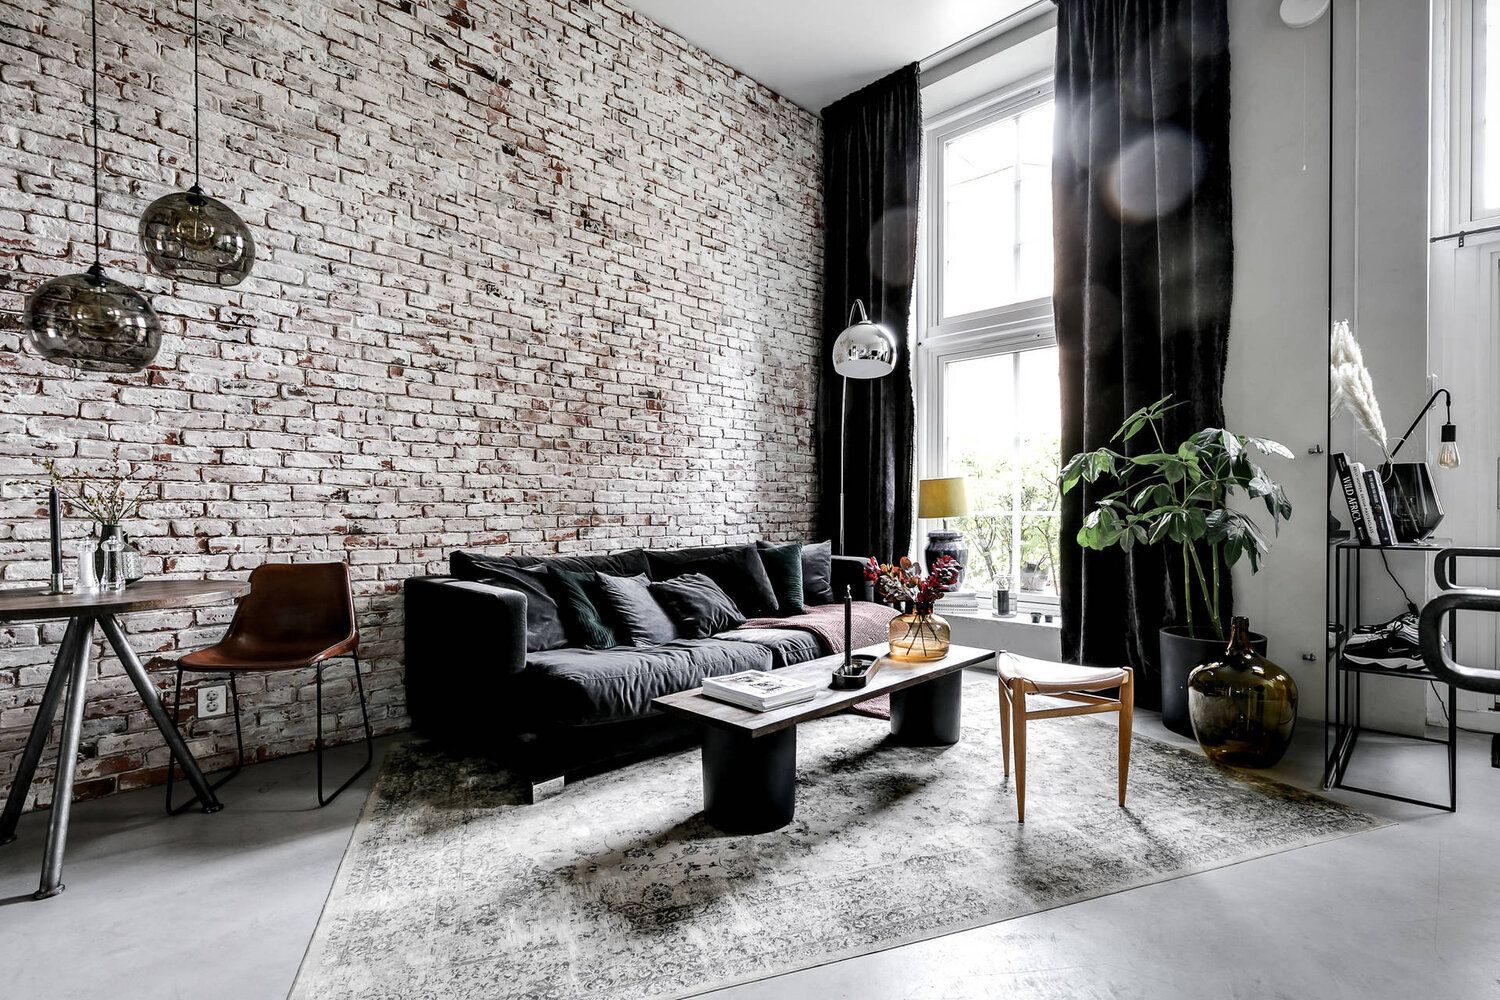 An Industrial Scandinavian Apartment With Exposed Brick Wall The Nordroom Industrial Apartment Decor Home Decor Apartment Decor